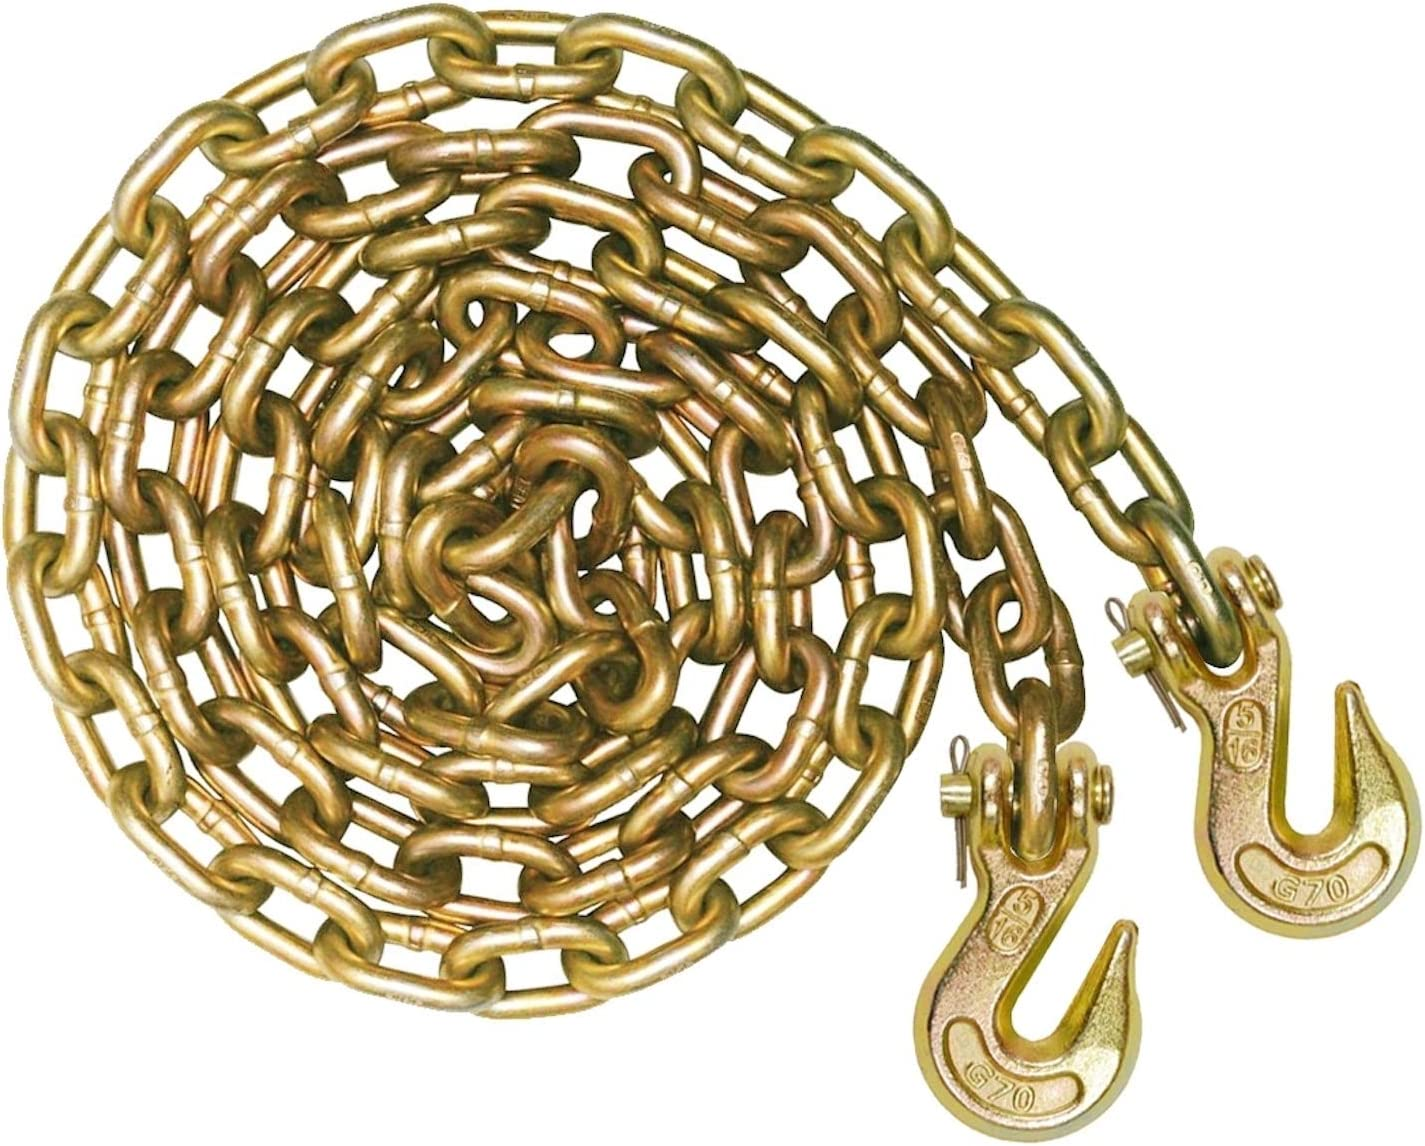 VULCAN Grade 70 Safety/Binder Chain with Clevis Grab Hooks - 5/16 Inch x 10 Foot - 4,700 Pound Safe Working Load